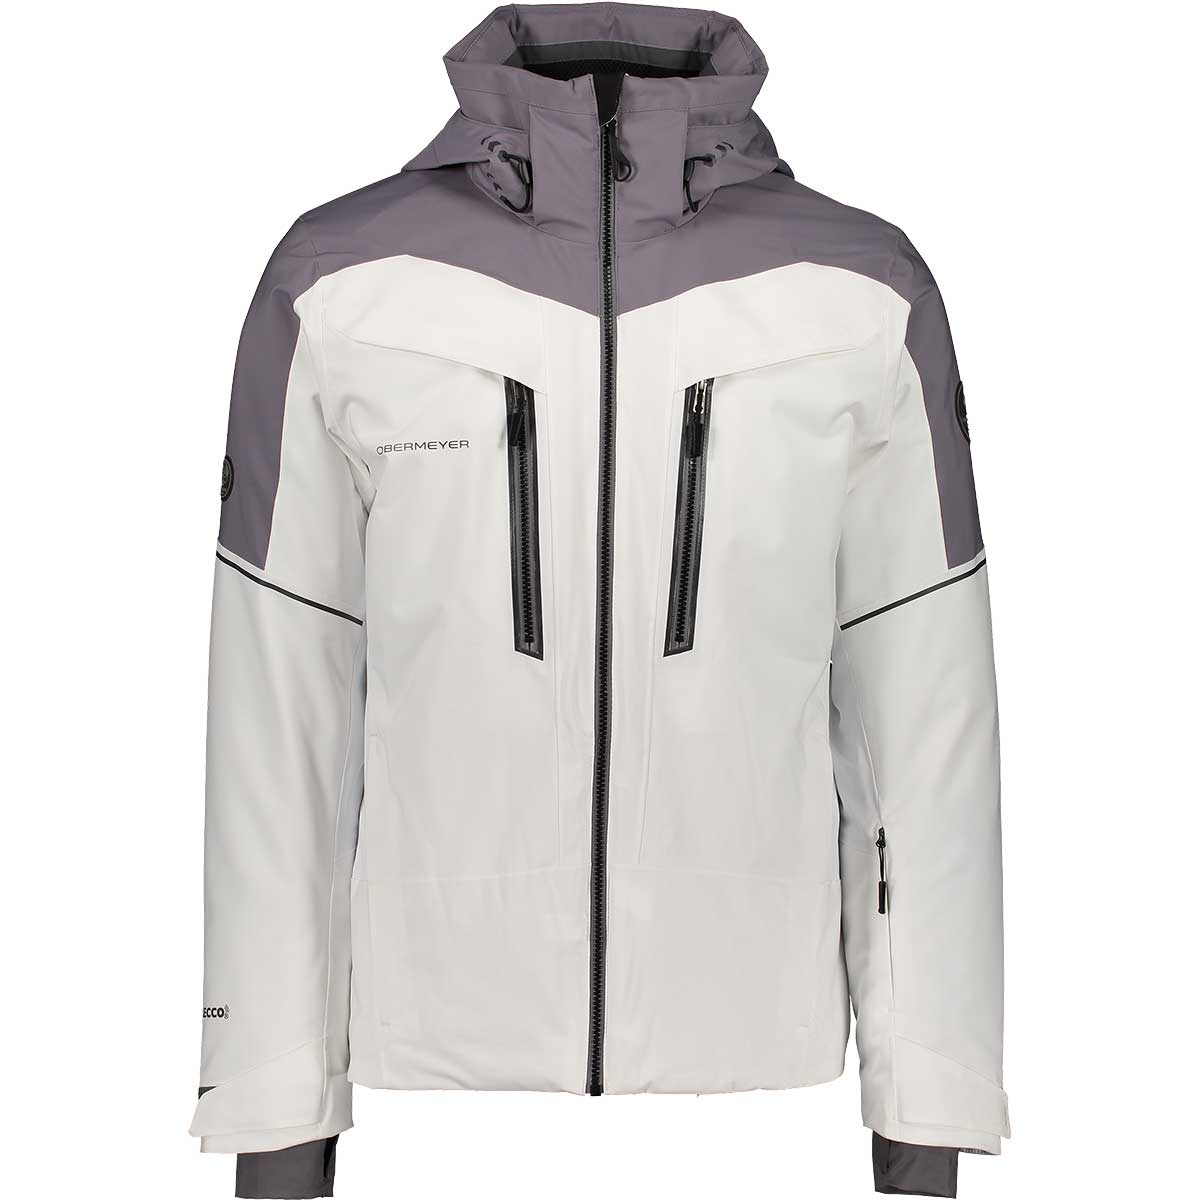 Obermeyer men's Charger Jacket in White front view